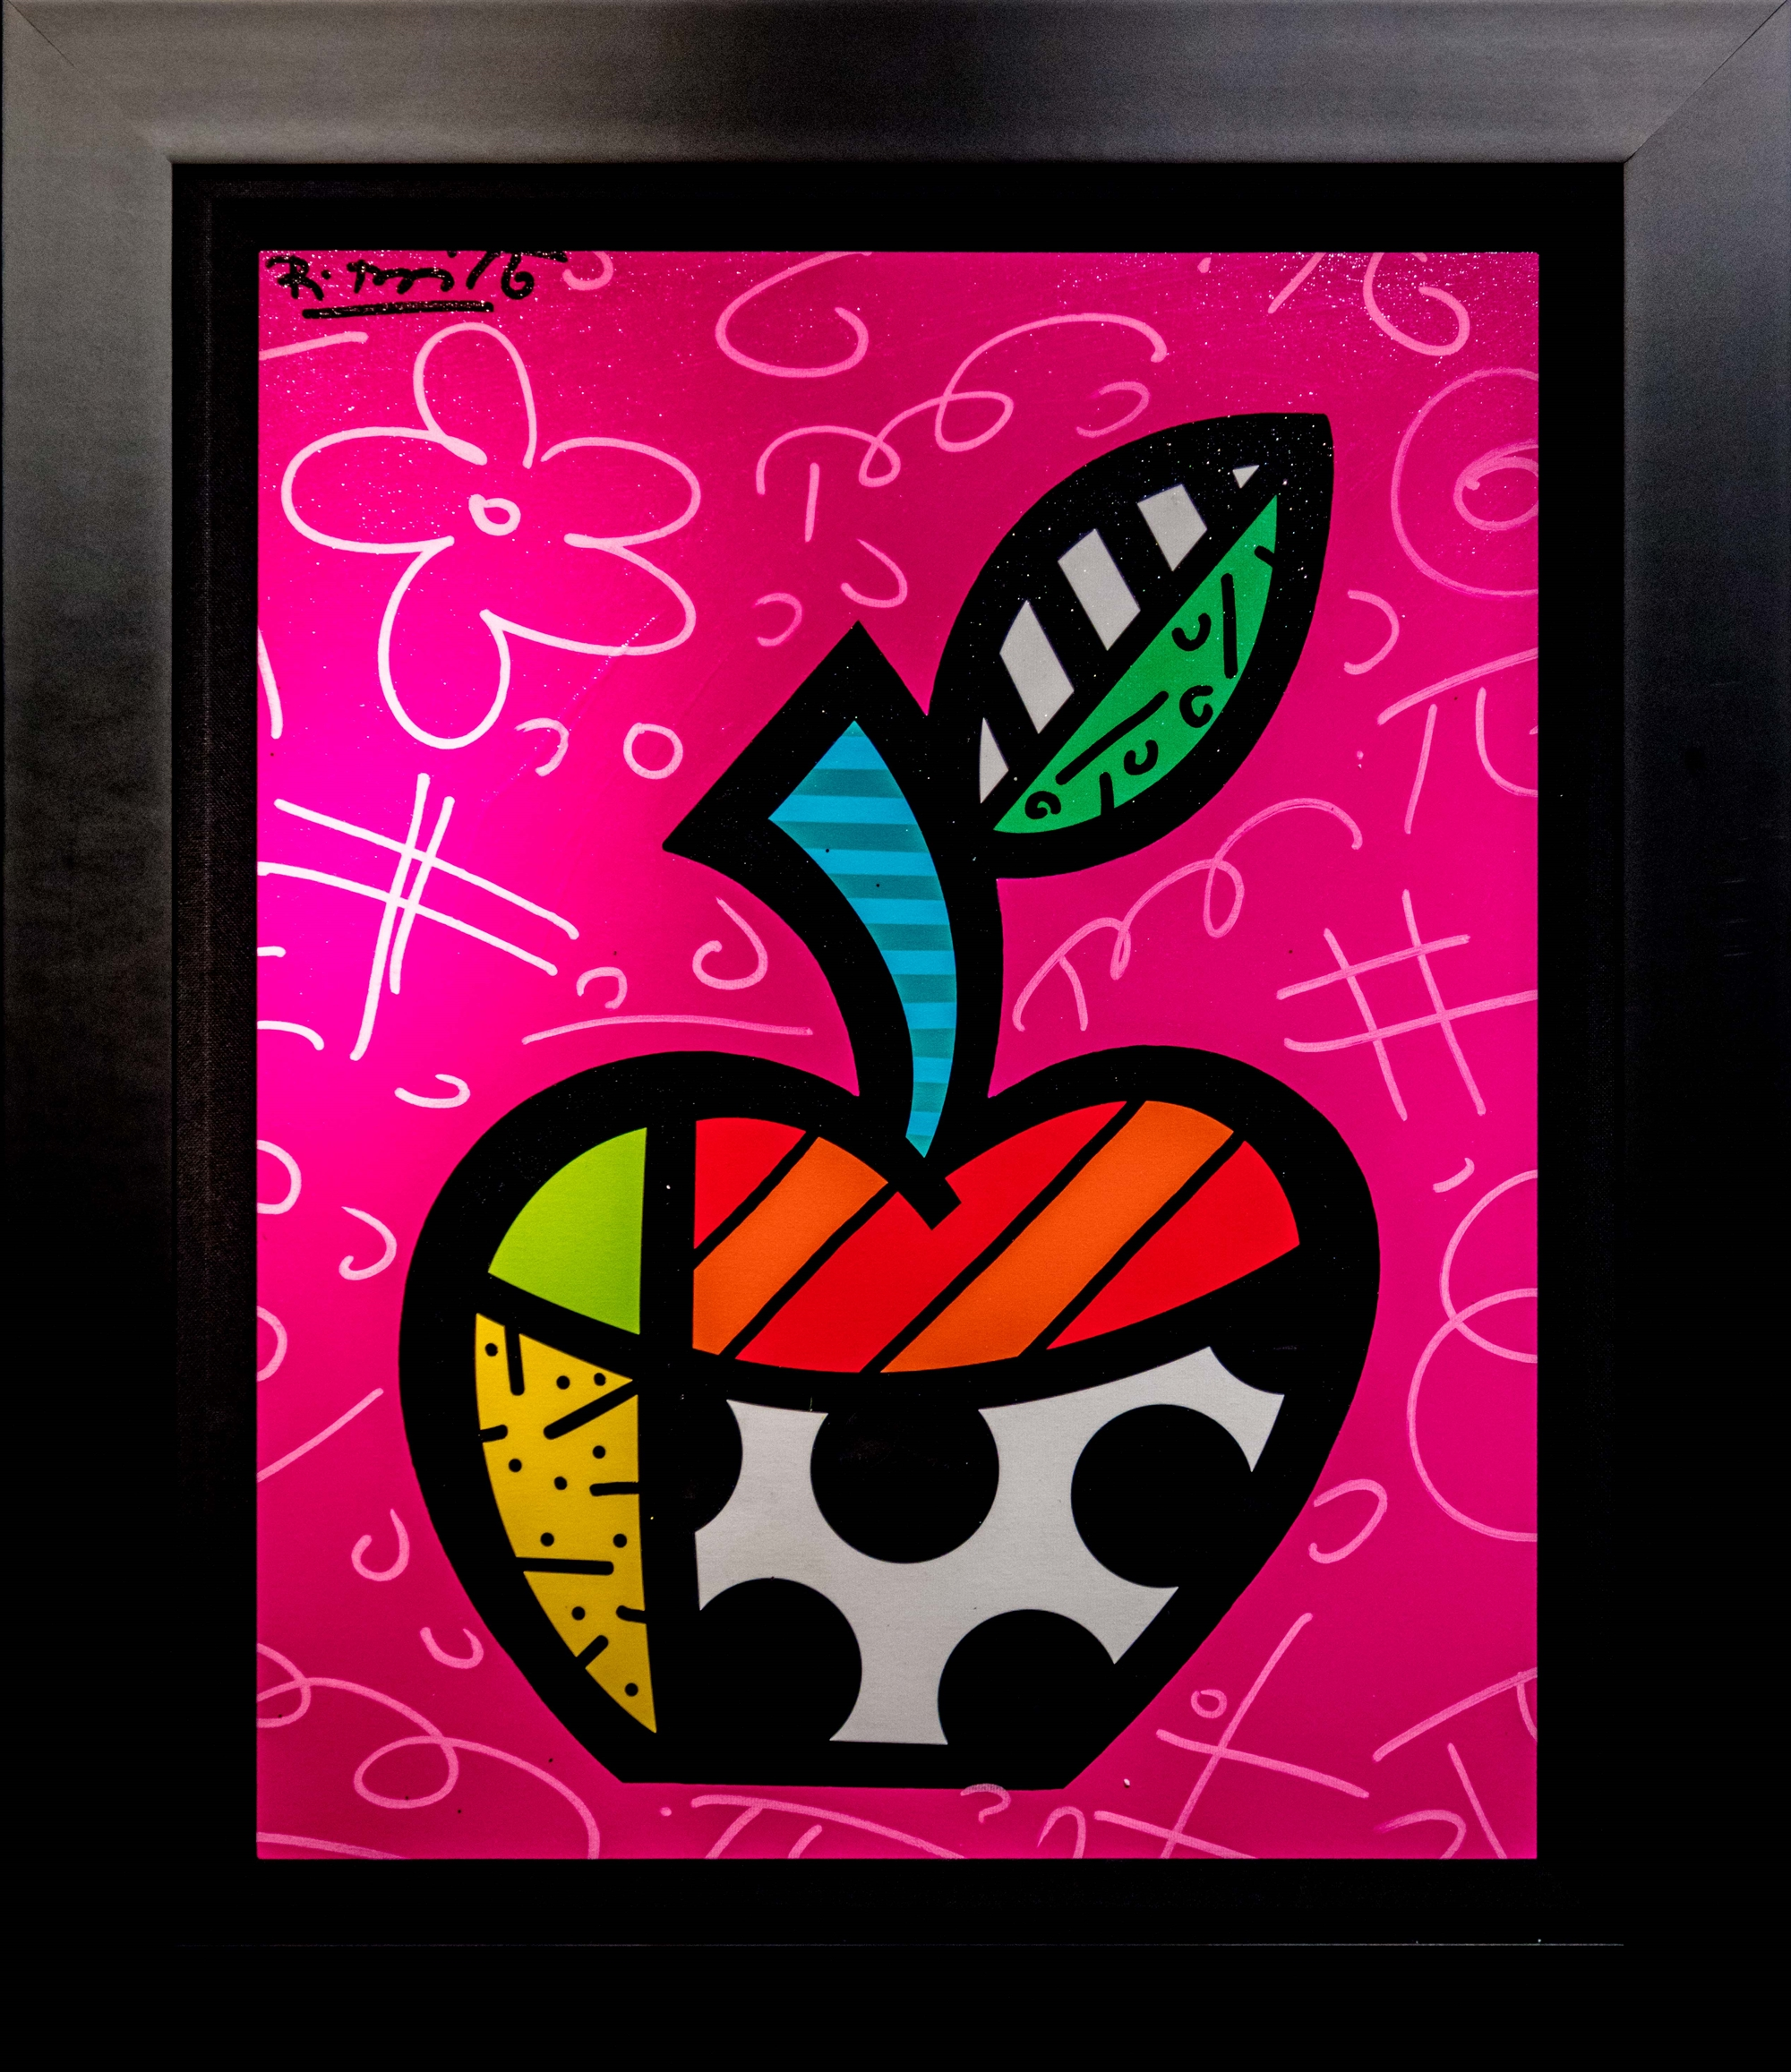 FLORIDA APPLE by Romero Britto